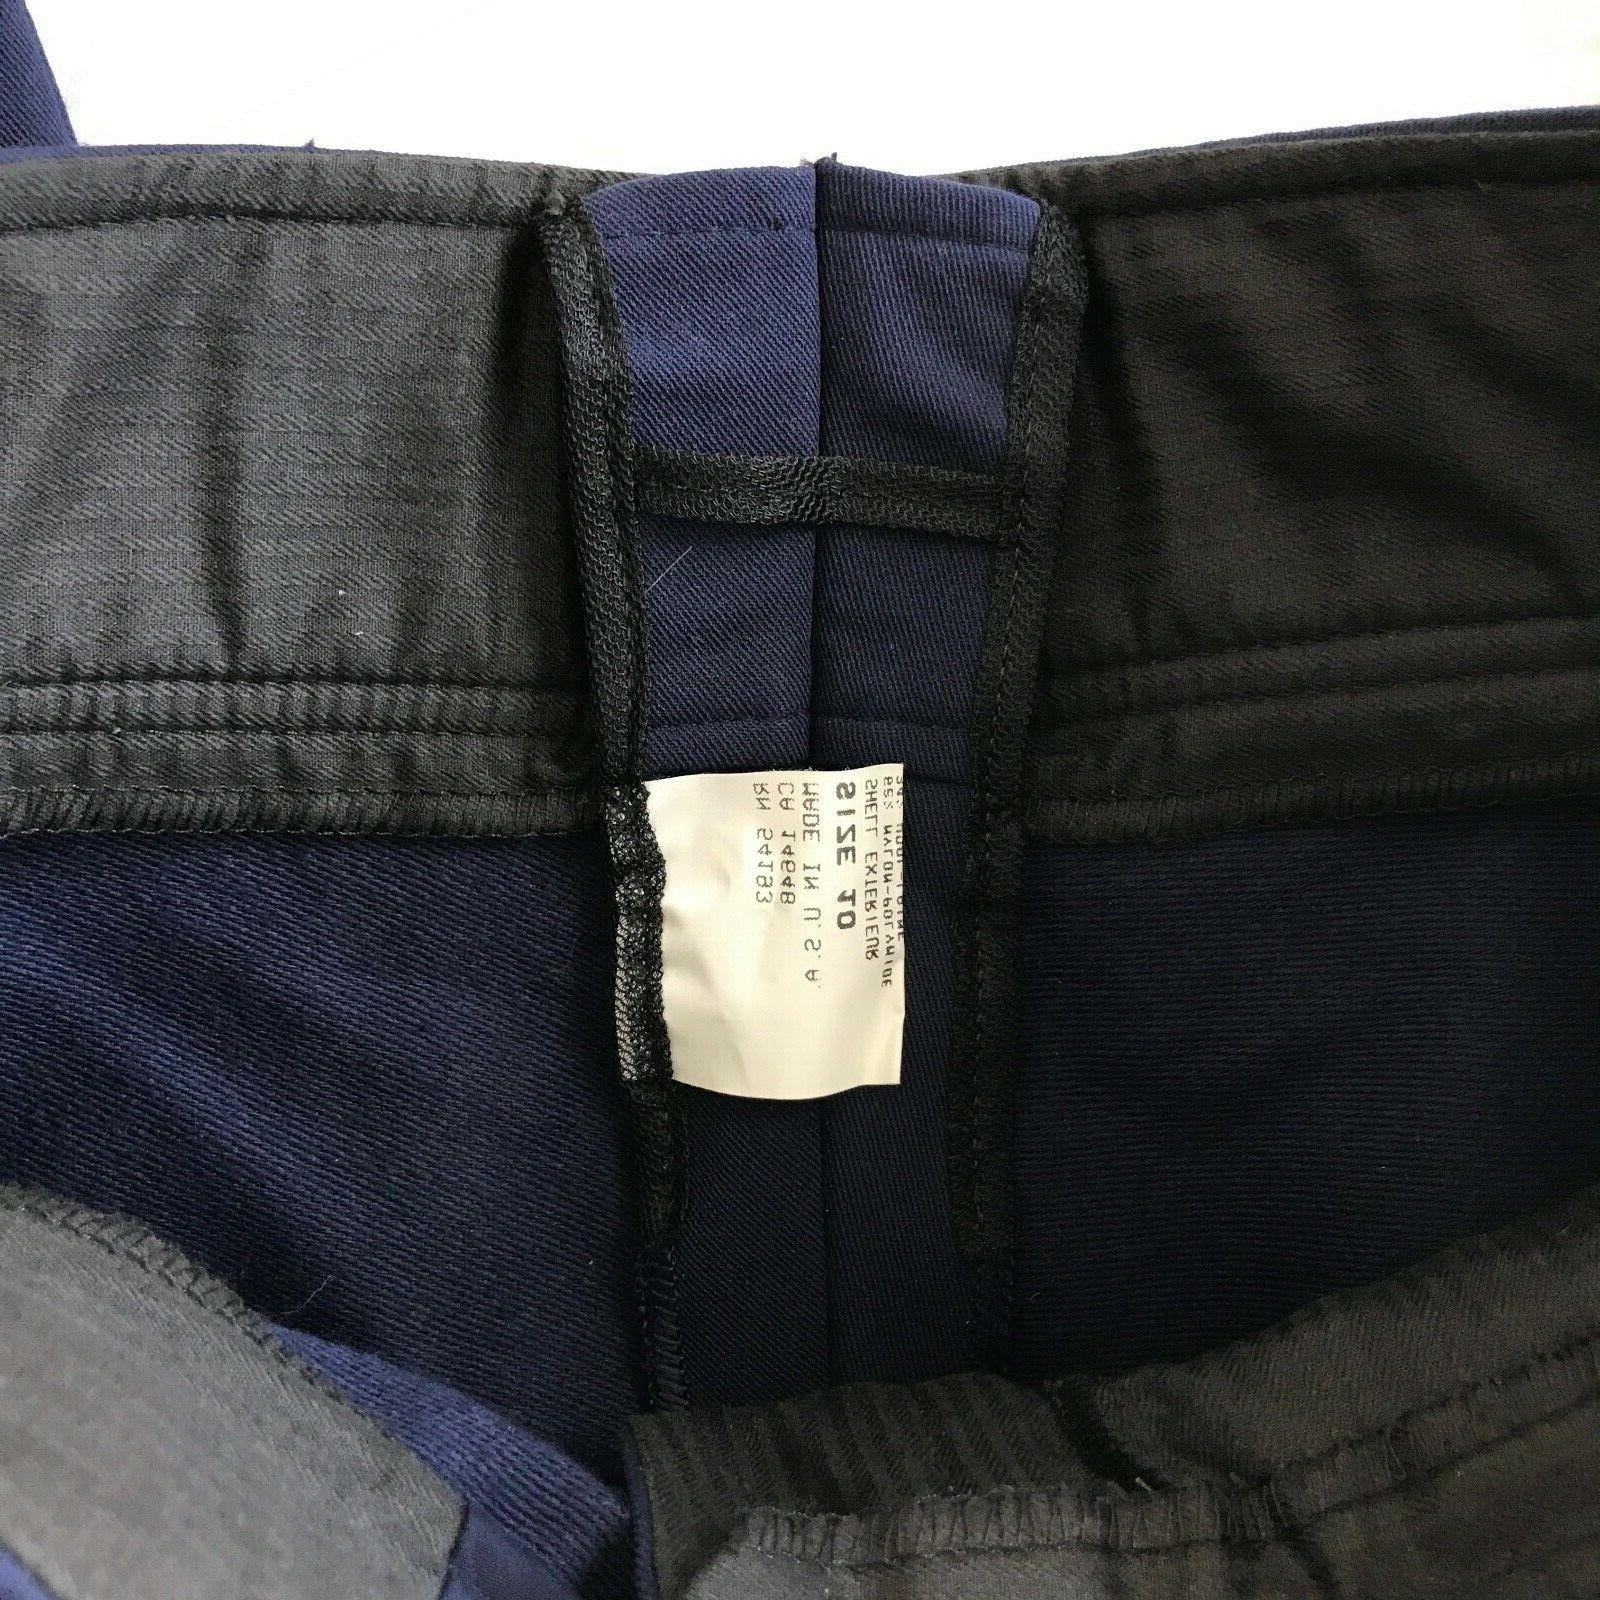 VTG Bogner Women's Stirrup Ski Pants Navy 10 Regular